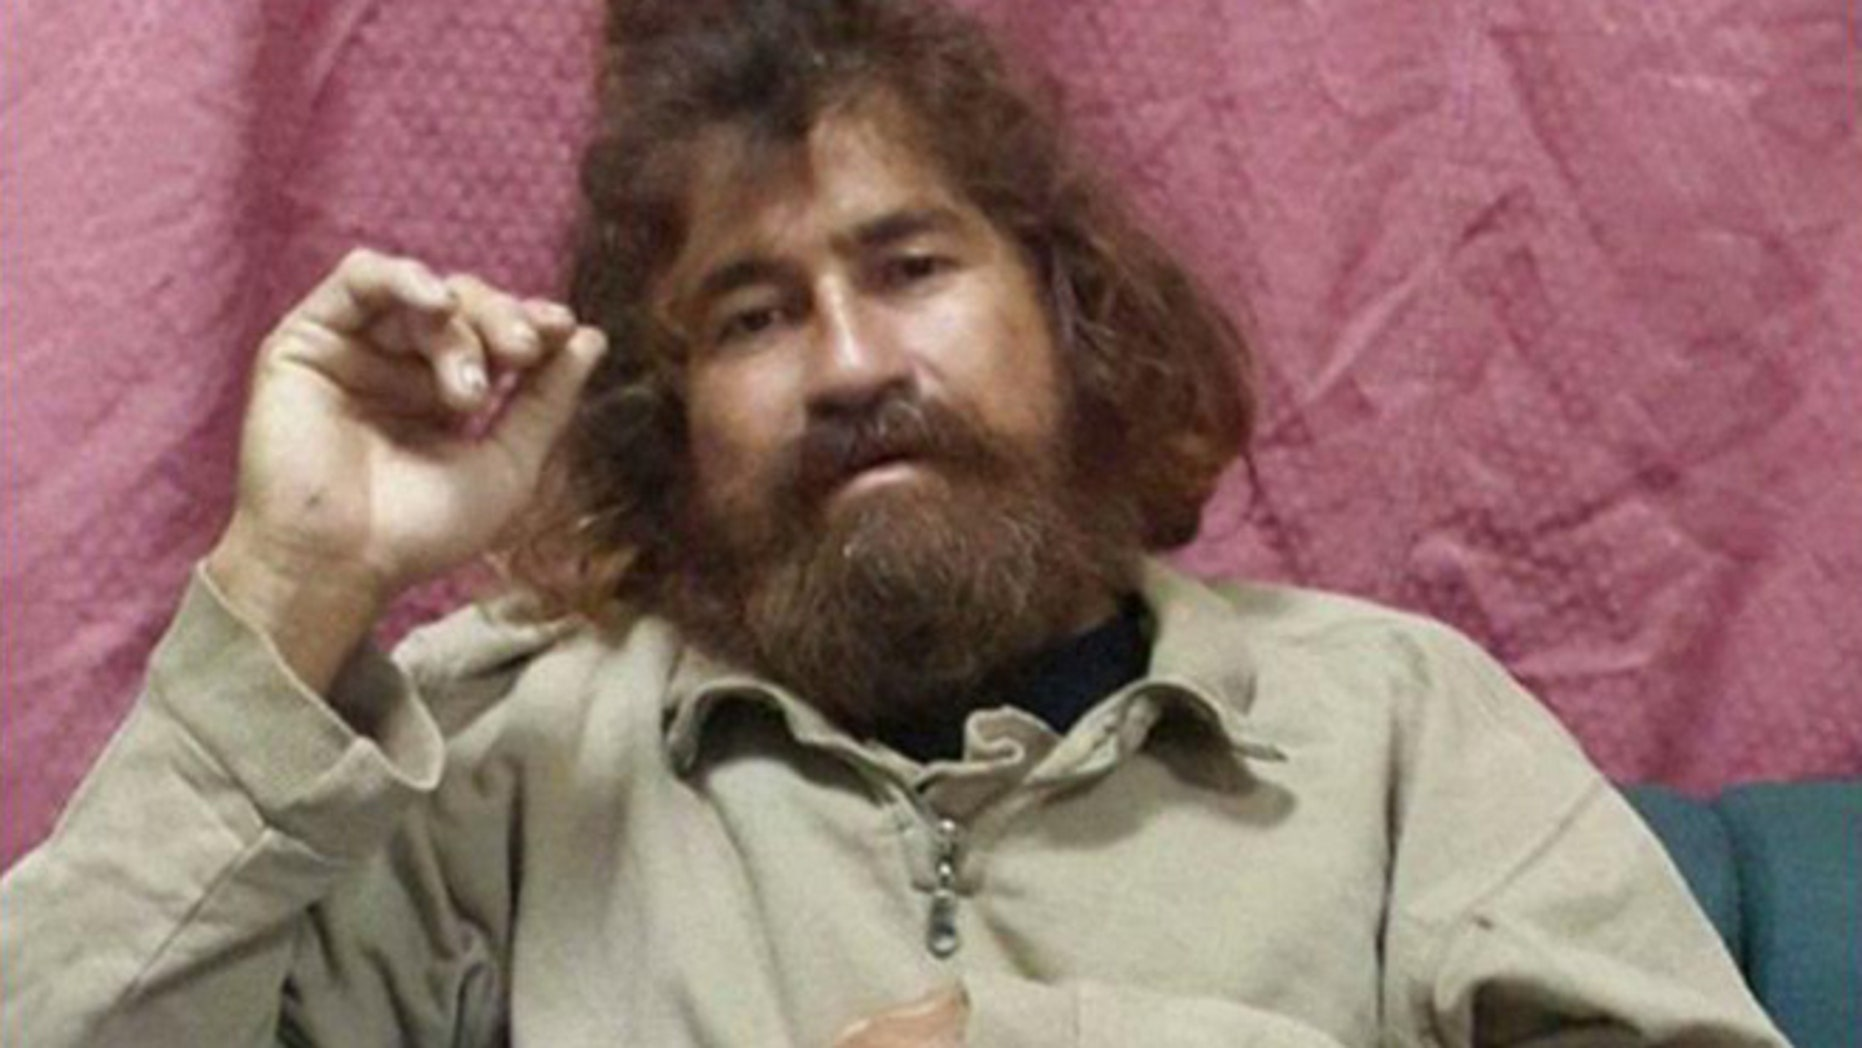 Jose Salvador Alvarenga claims that he spent 13 months at sea, but some are questioning his account due to his apparent good health.